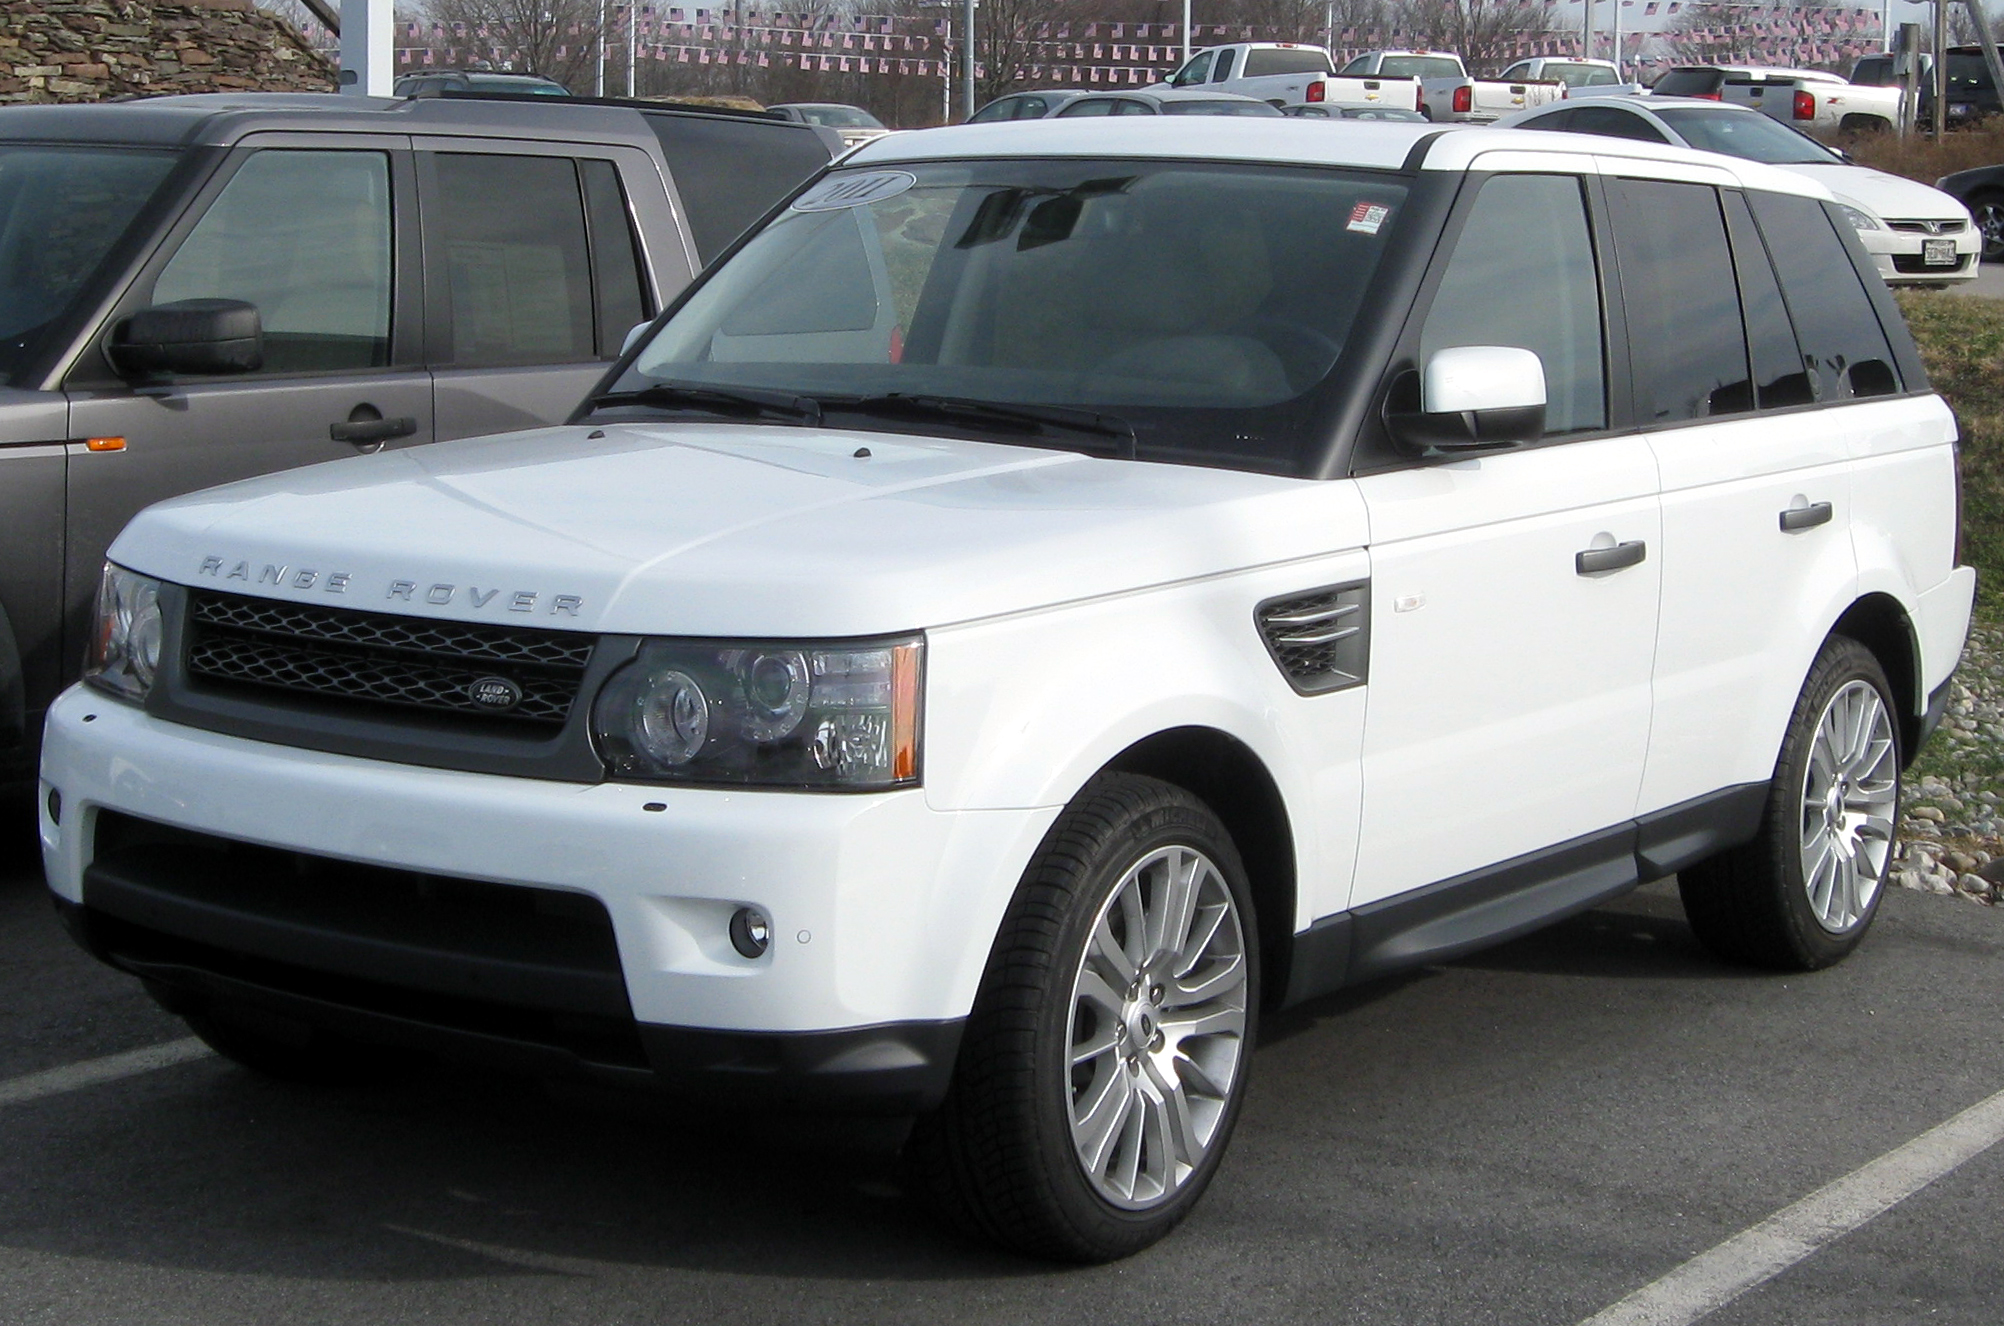 Description 2011 Range Rover Sport -- 12-31-2010.jpg